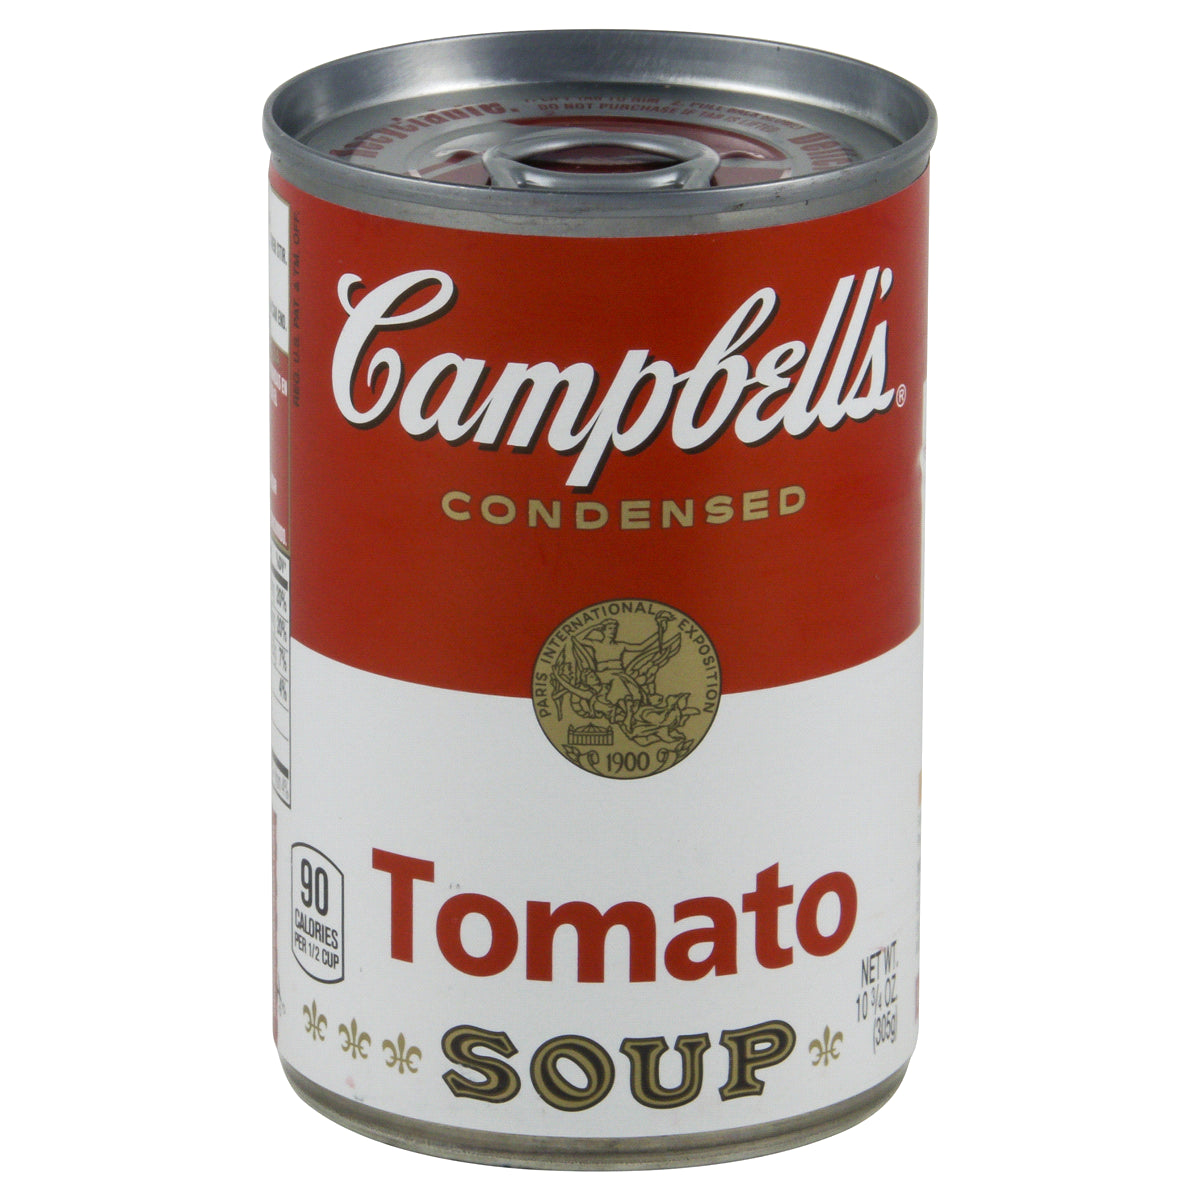 bel>Campbell's Soup, Tomato